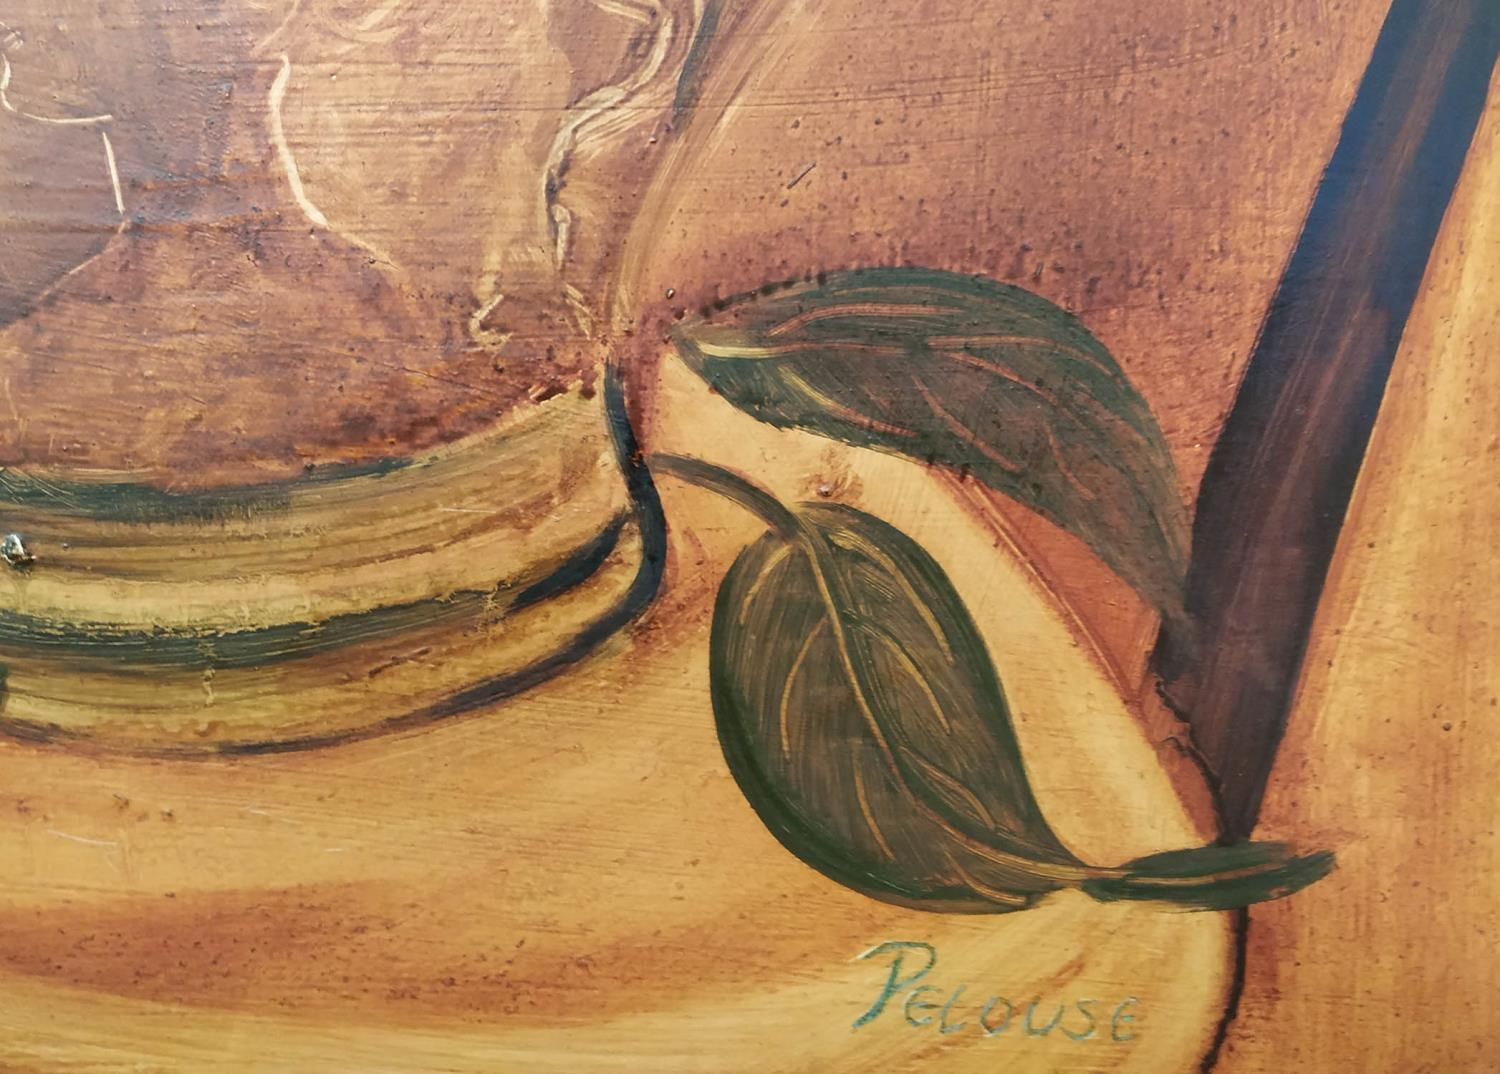 PELOUSE (20th century, France) 'Still Life with Mandolin', Palette, Jug and Flowers', oil on canvas, - Image 2 of 2